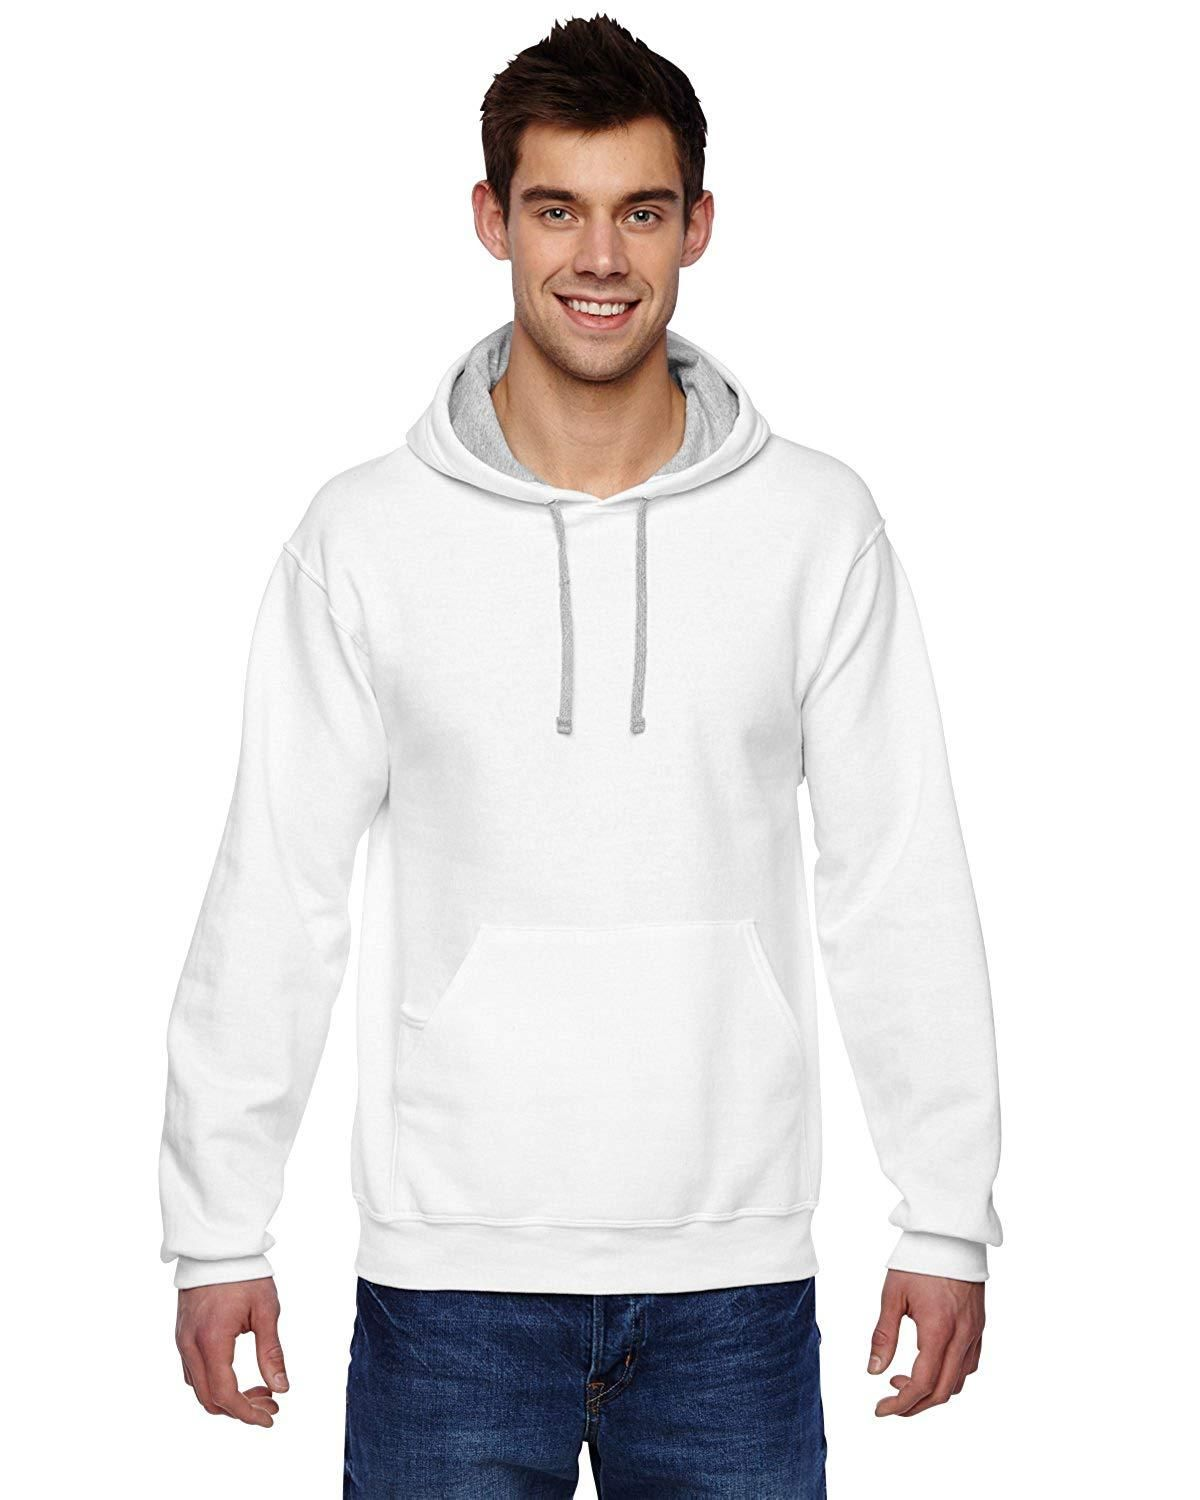 73a3f124 Fruit of the Loom - Sofspun Hooded Pullover Sweatshirt - SF76R ...